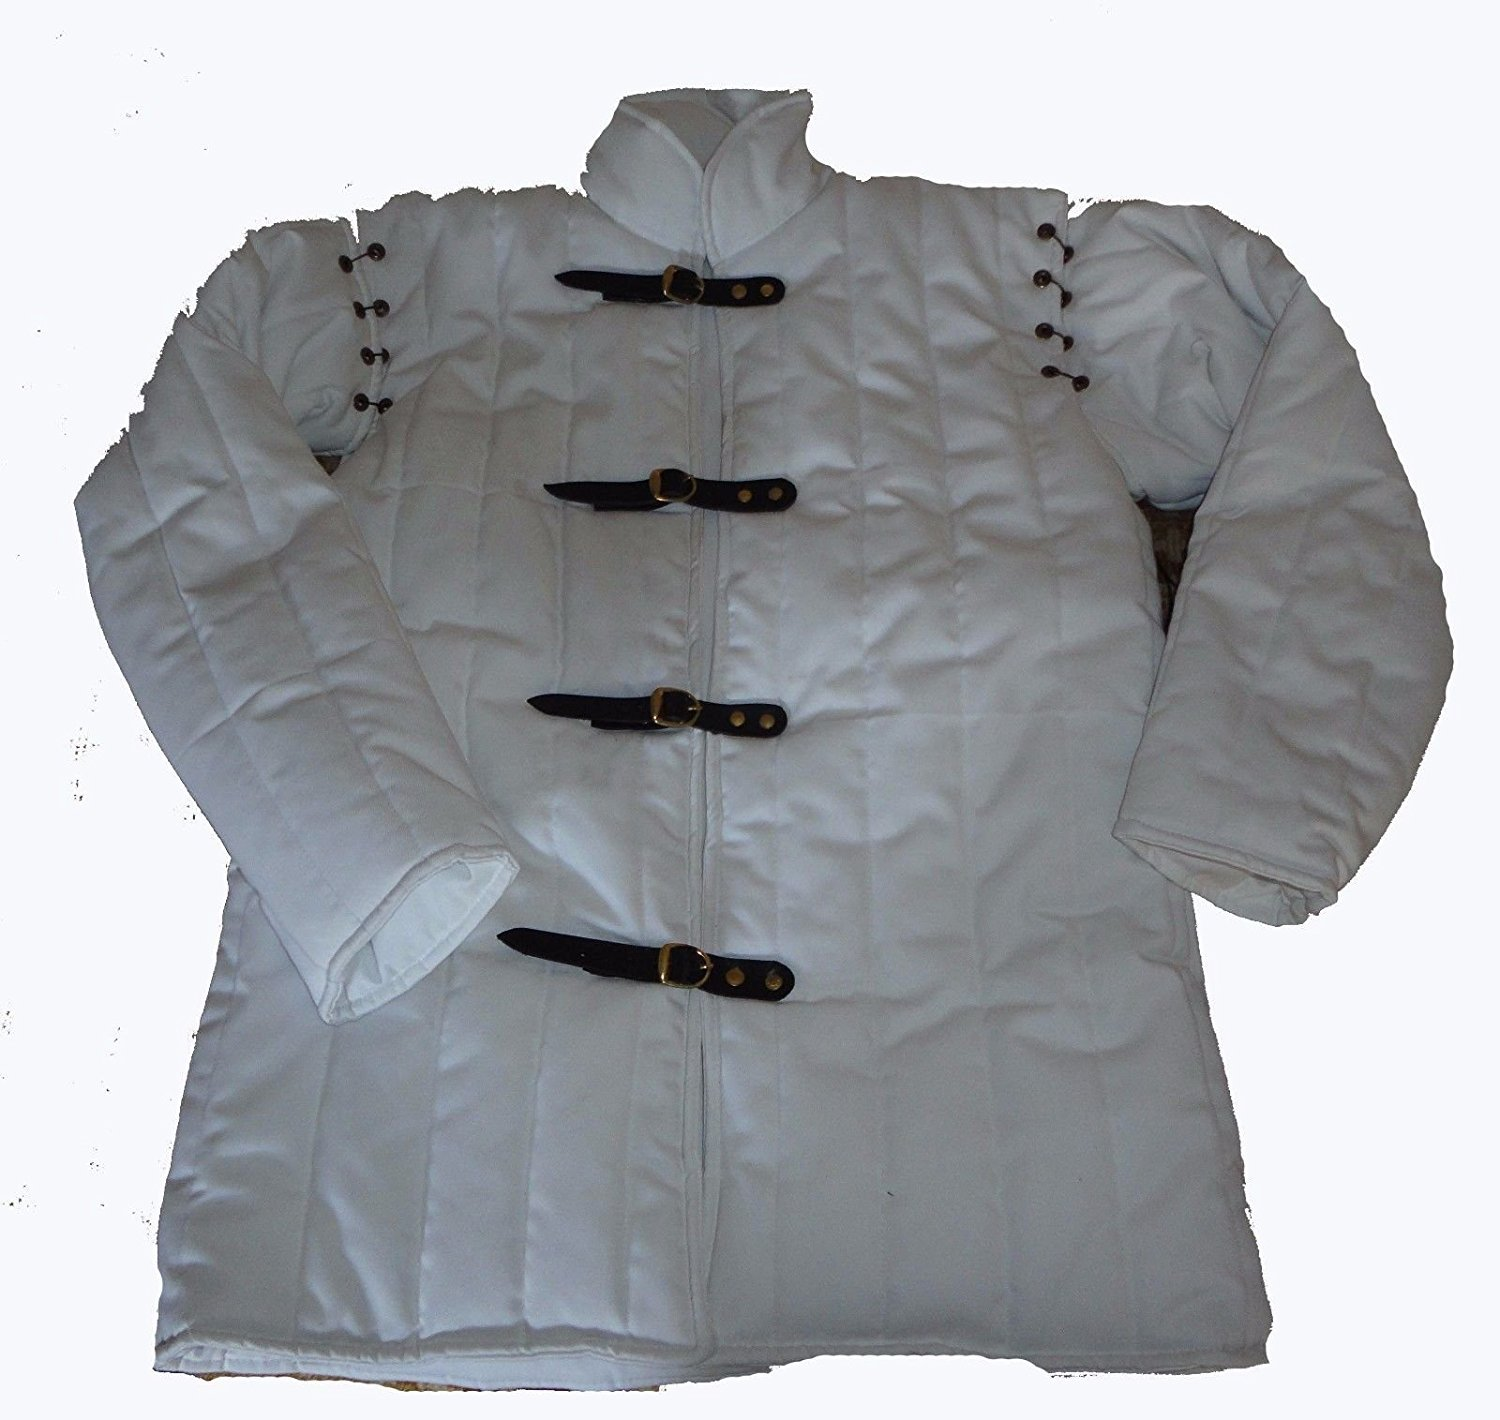 Medieval Thick Padded Gambeson Coat Aketon Jacket Armor - White, 6X-Large by Souvenir India